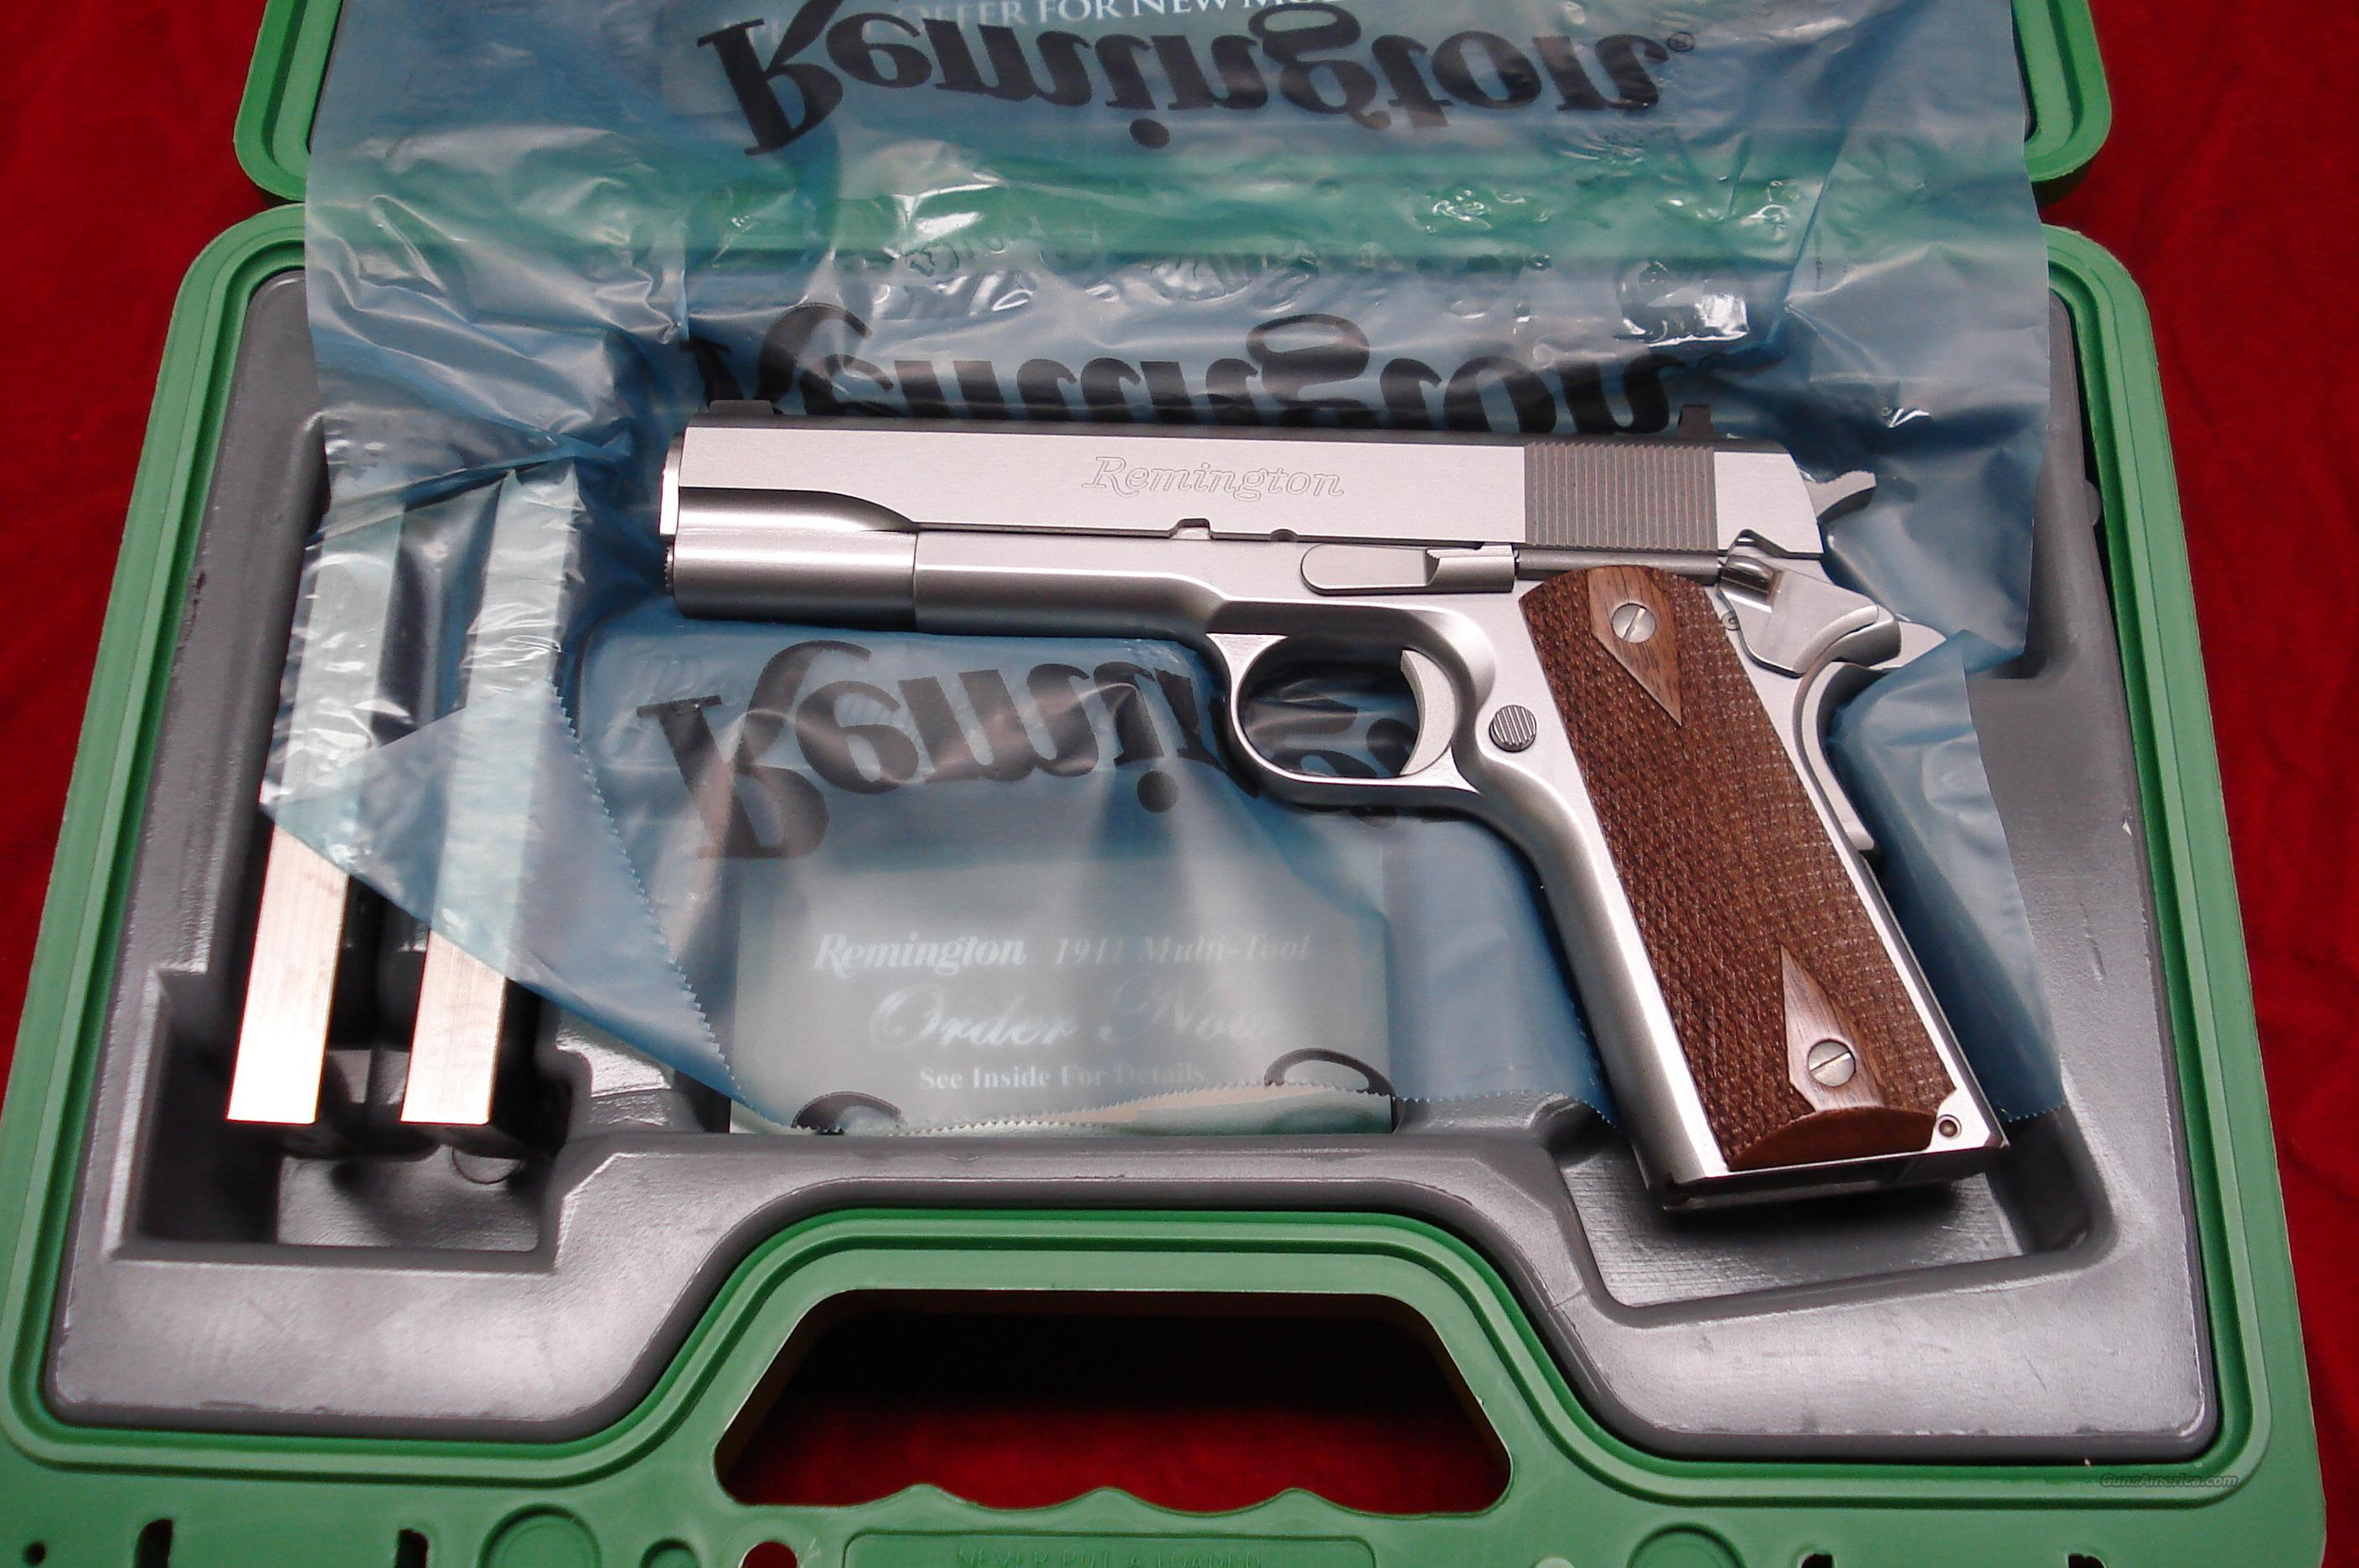 REMINGTON 1911 R1 STAINLESS 45ACP NEW {{ IN STOCK READY TO SHIP }}  Guns > Pistols > Remington Pistols - Modern